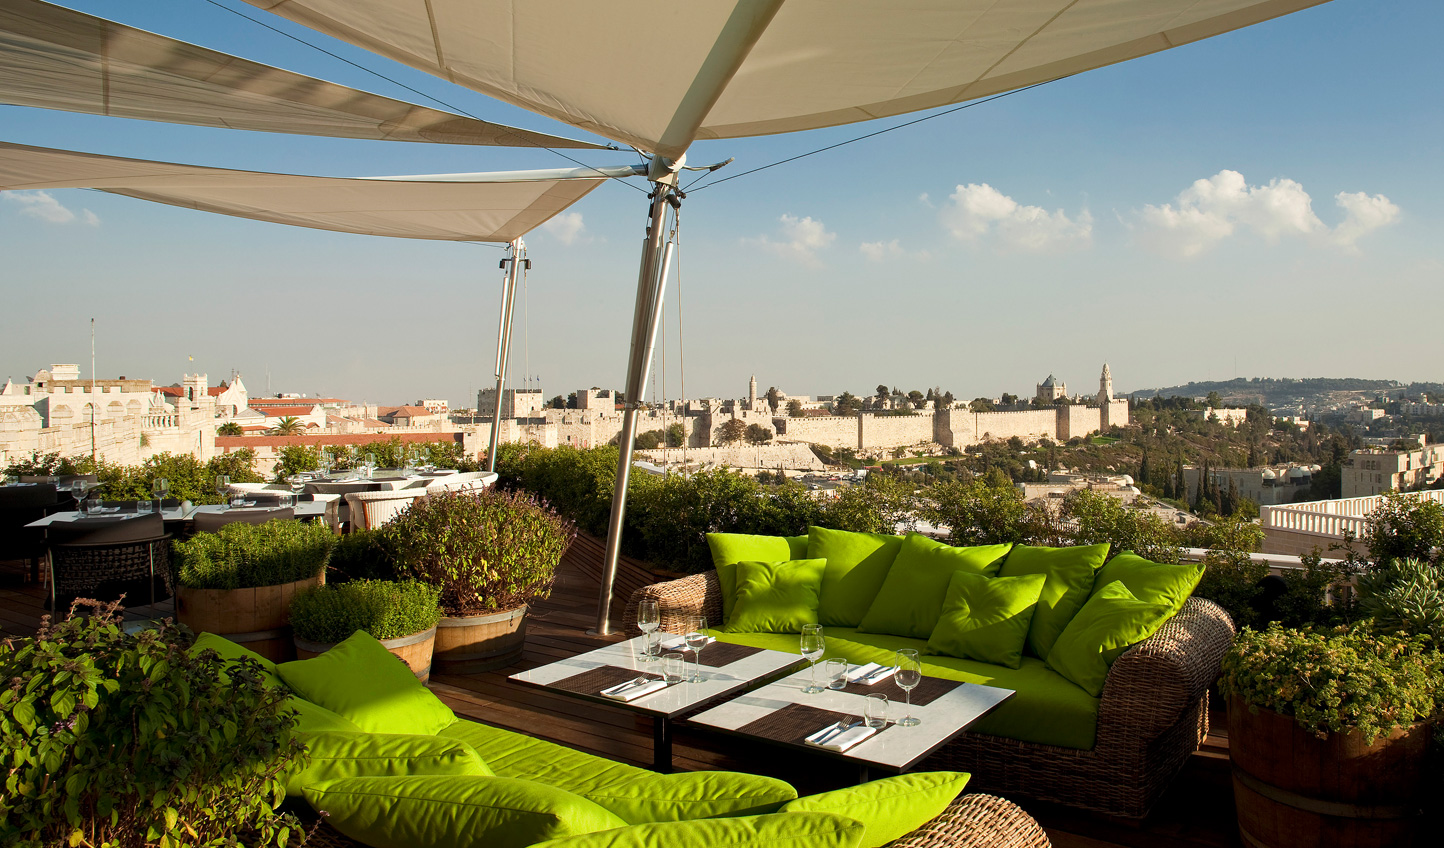 Drink in the city from the rooftop lounge of Mamilla Hotel